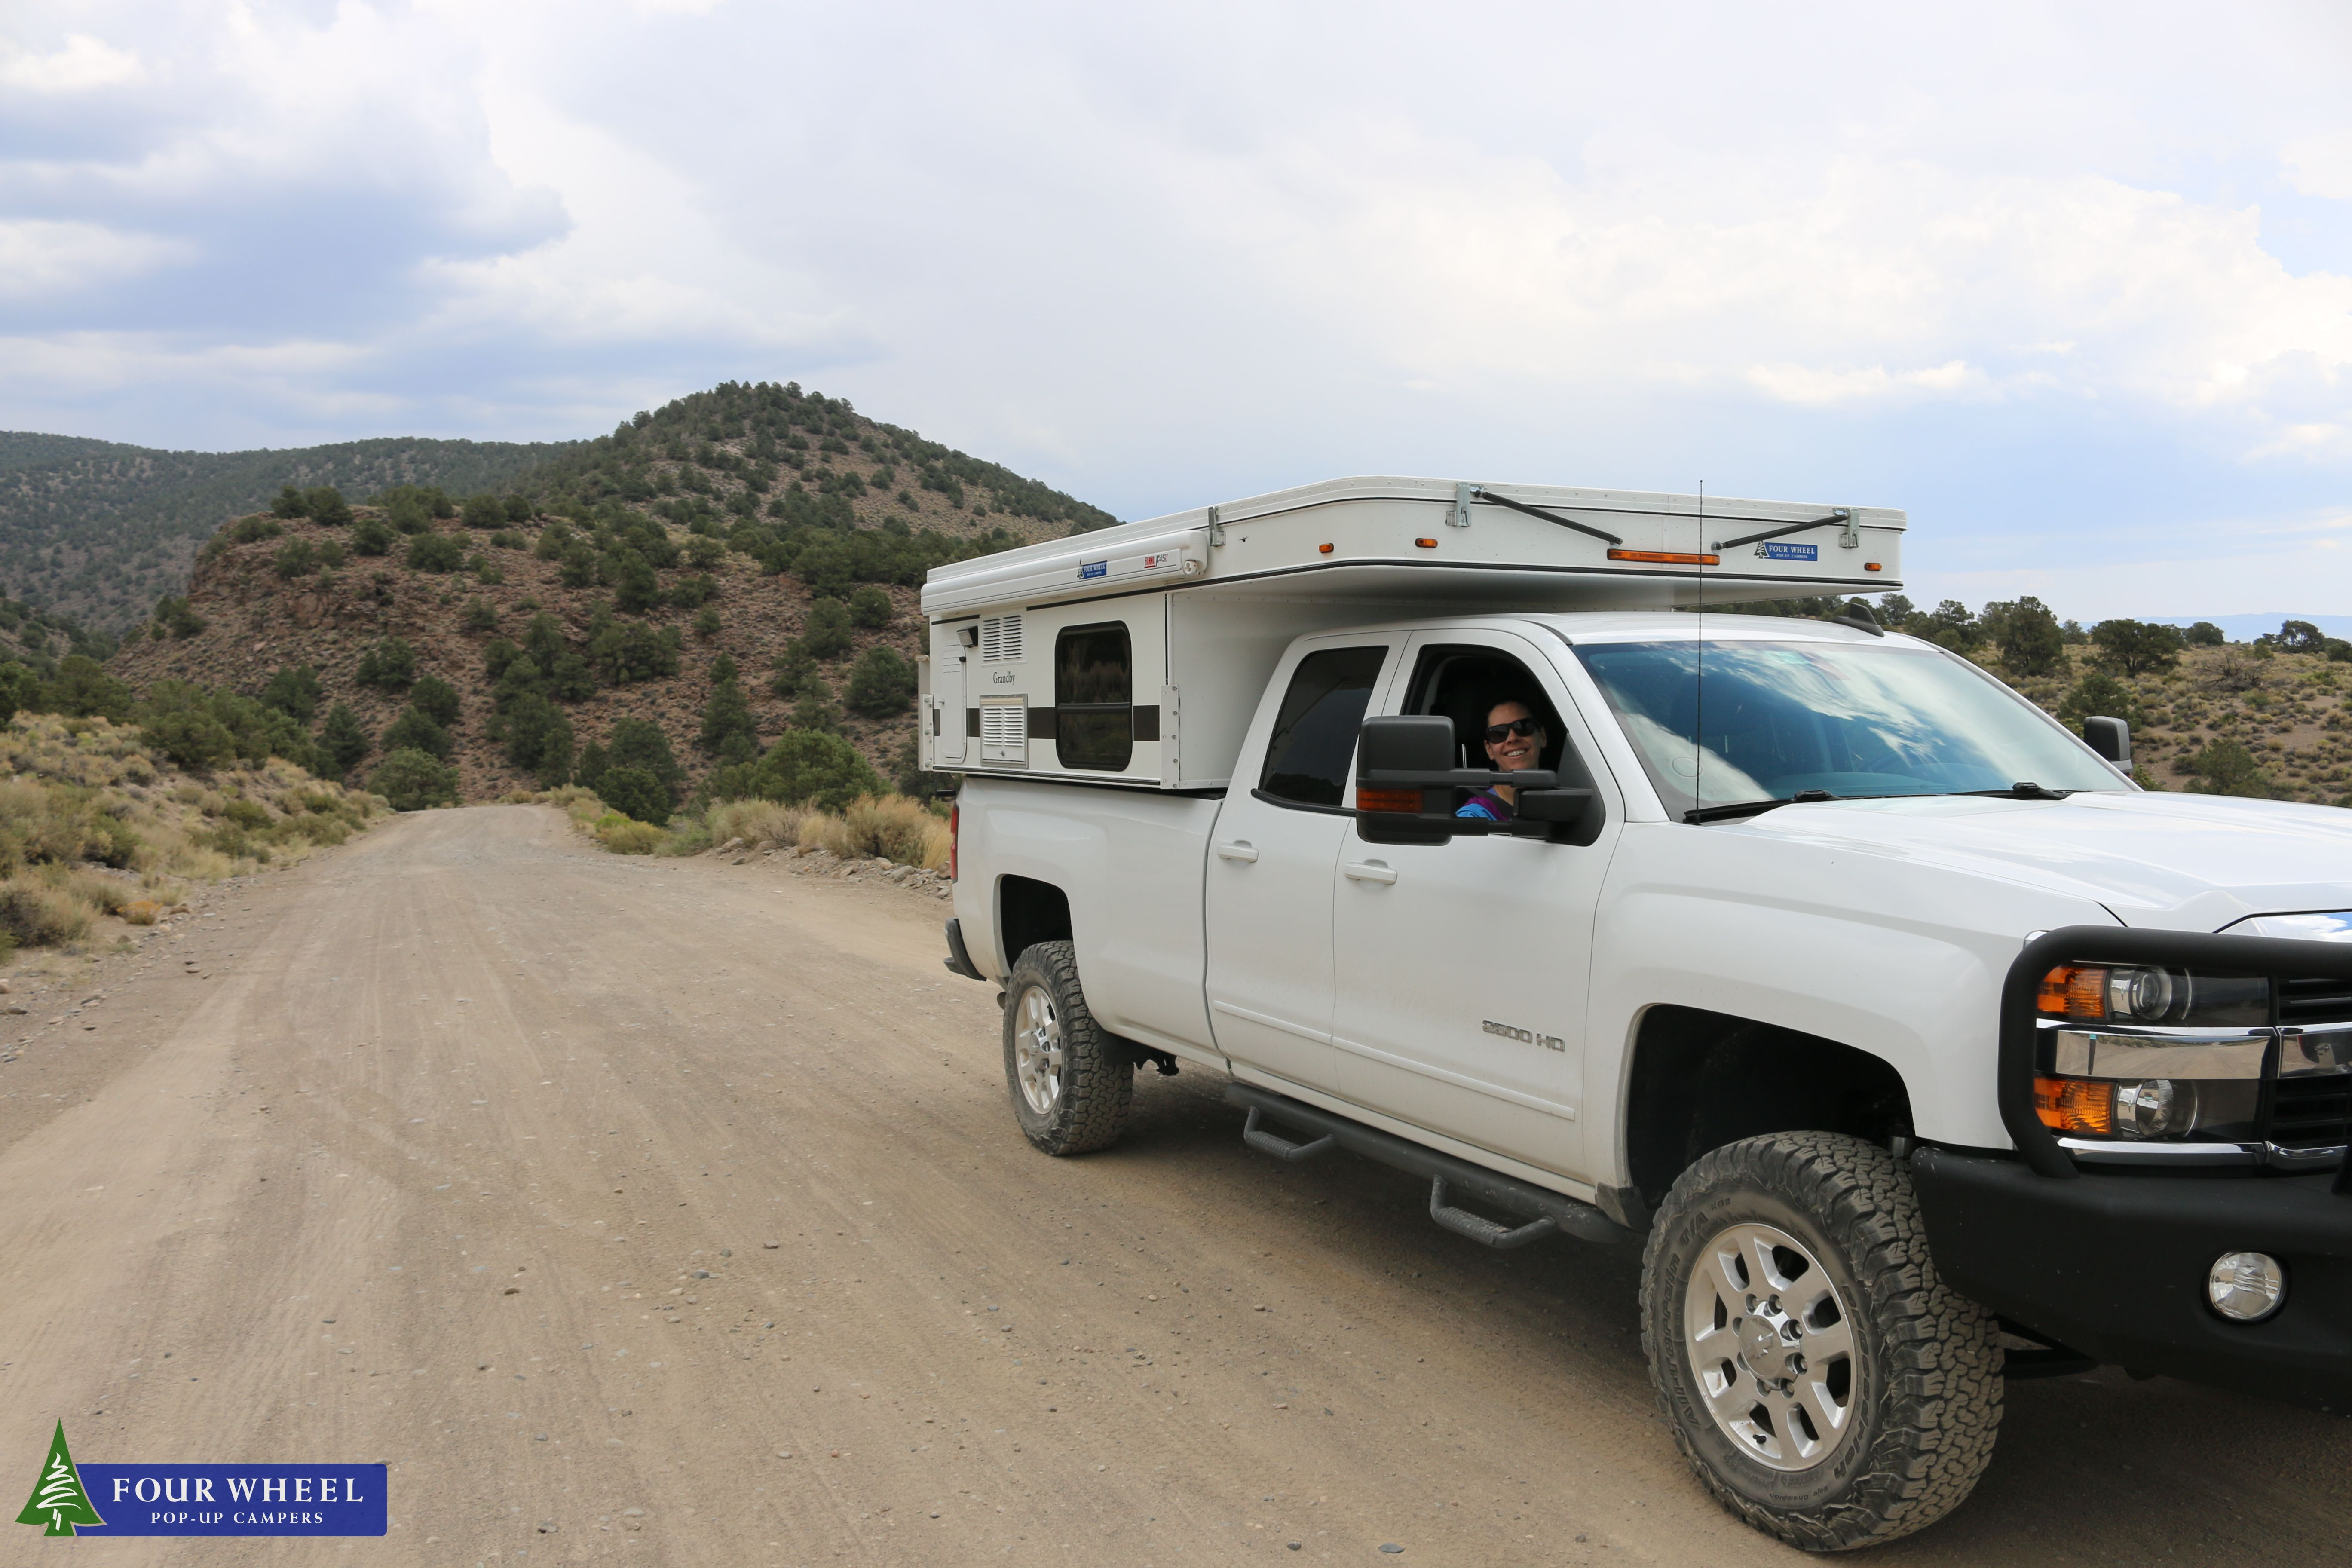 Mobile Lifestyle In The Slide In Truck Camper On A Semi Desert